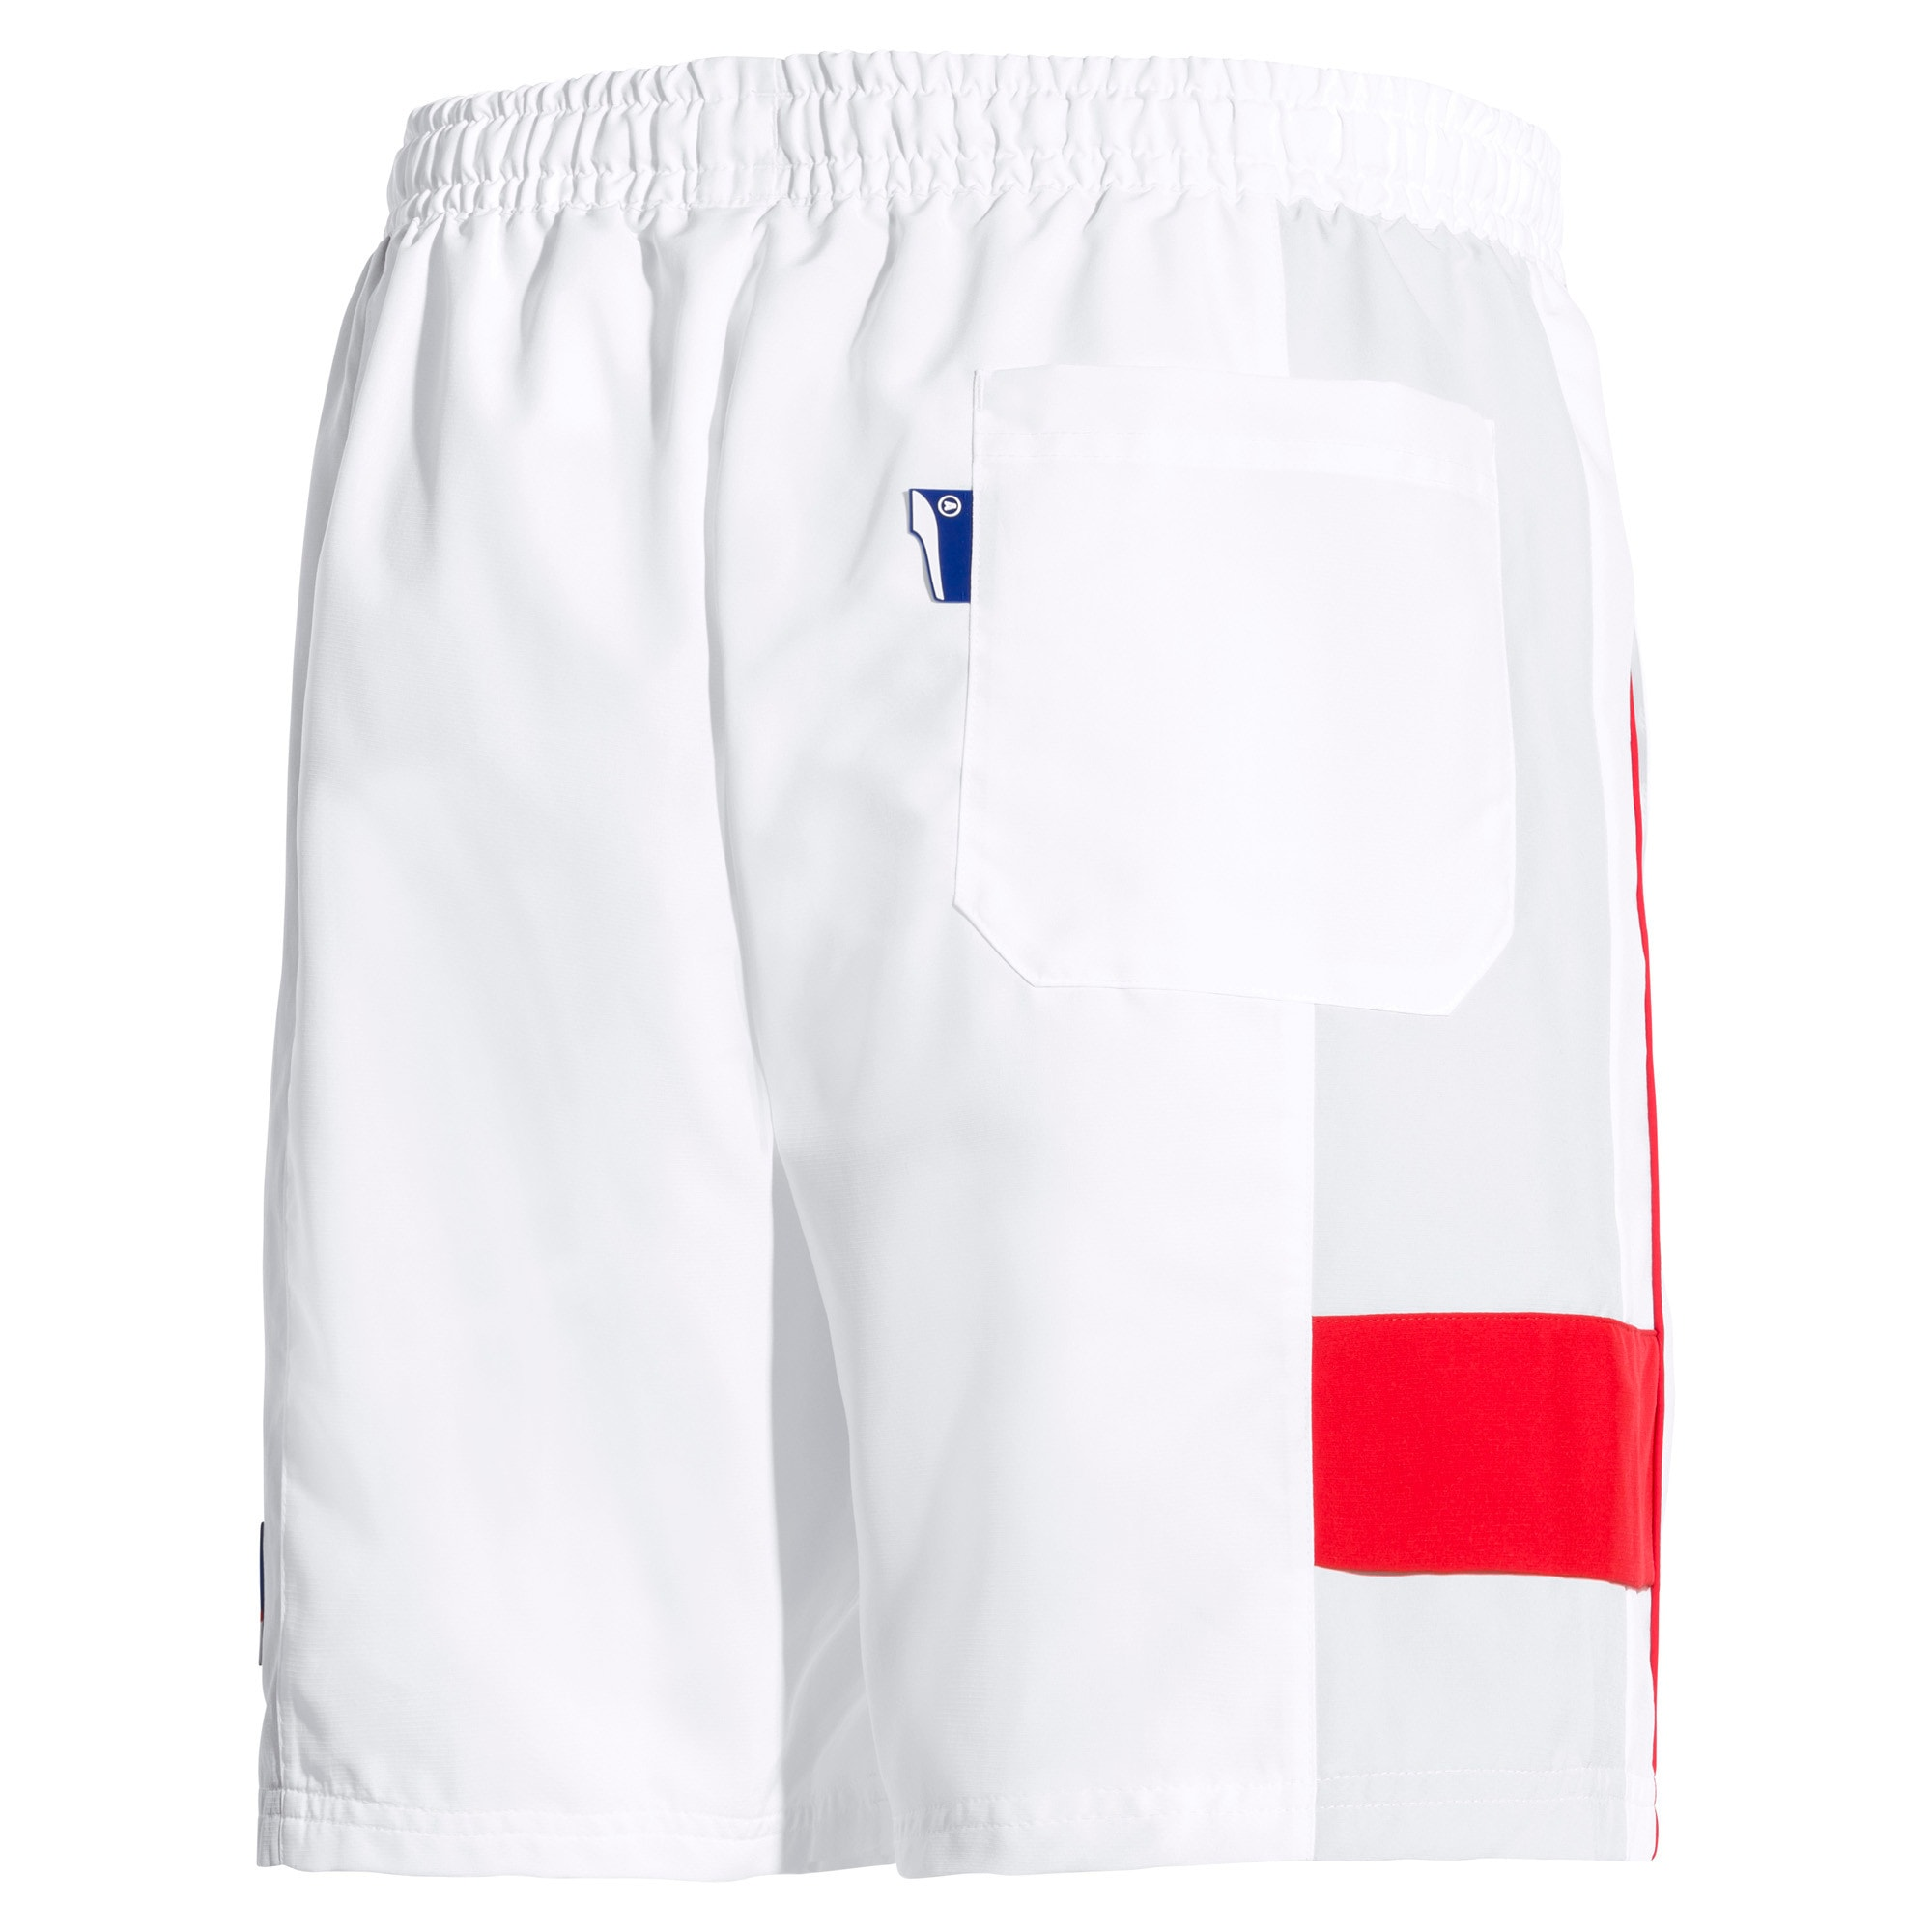 Thumbnail 4 of PUMA x ADER ERROR Shorts, Puma White, medium